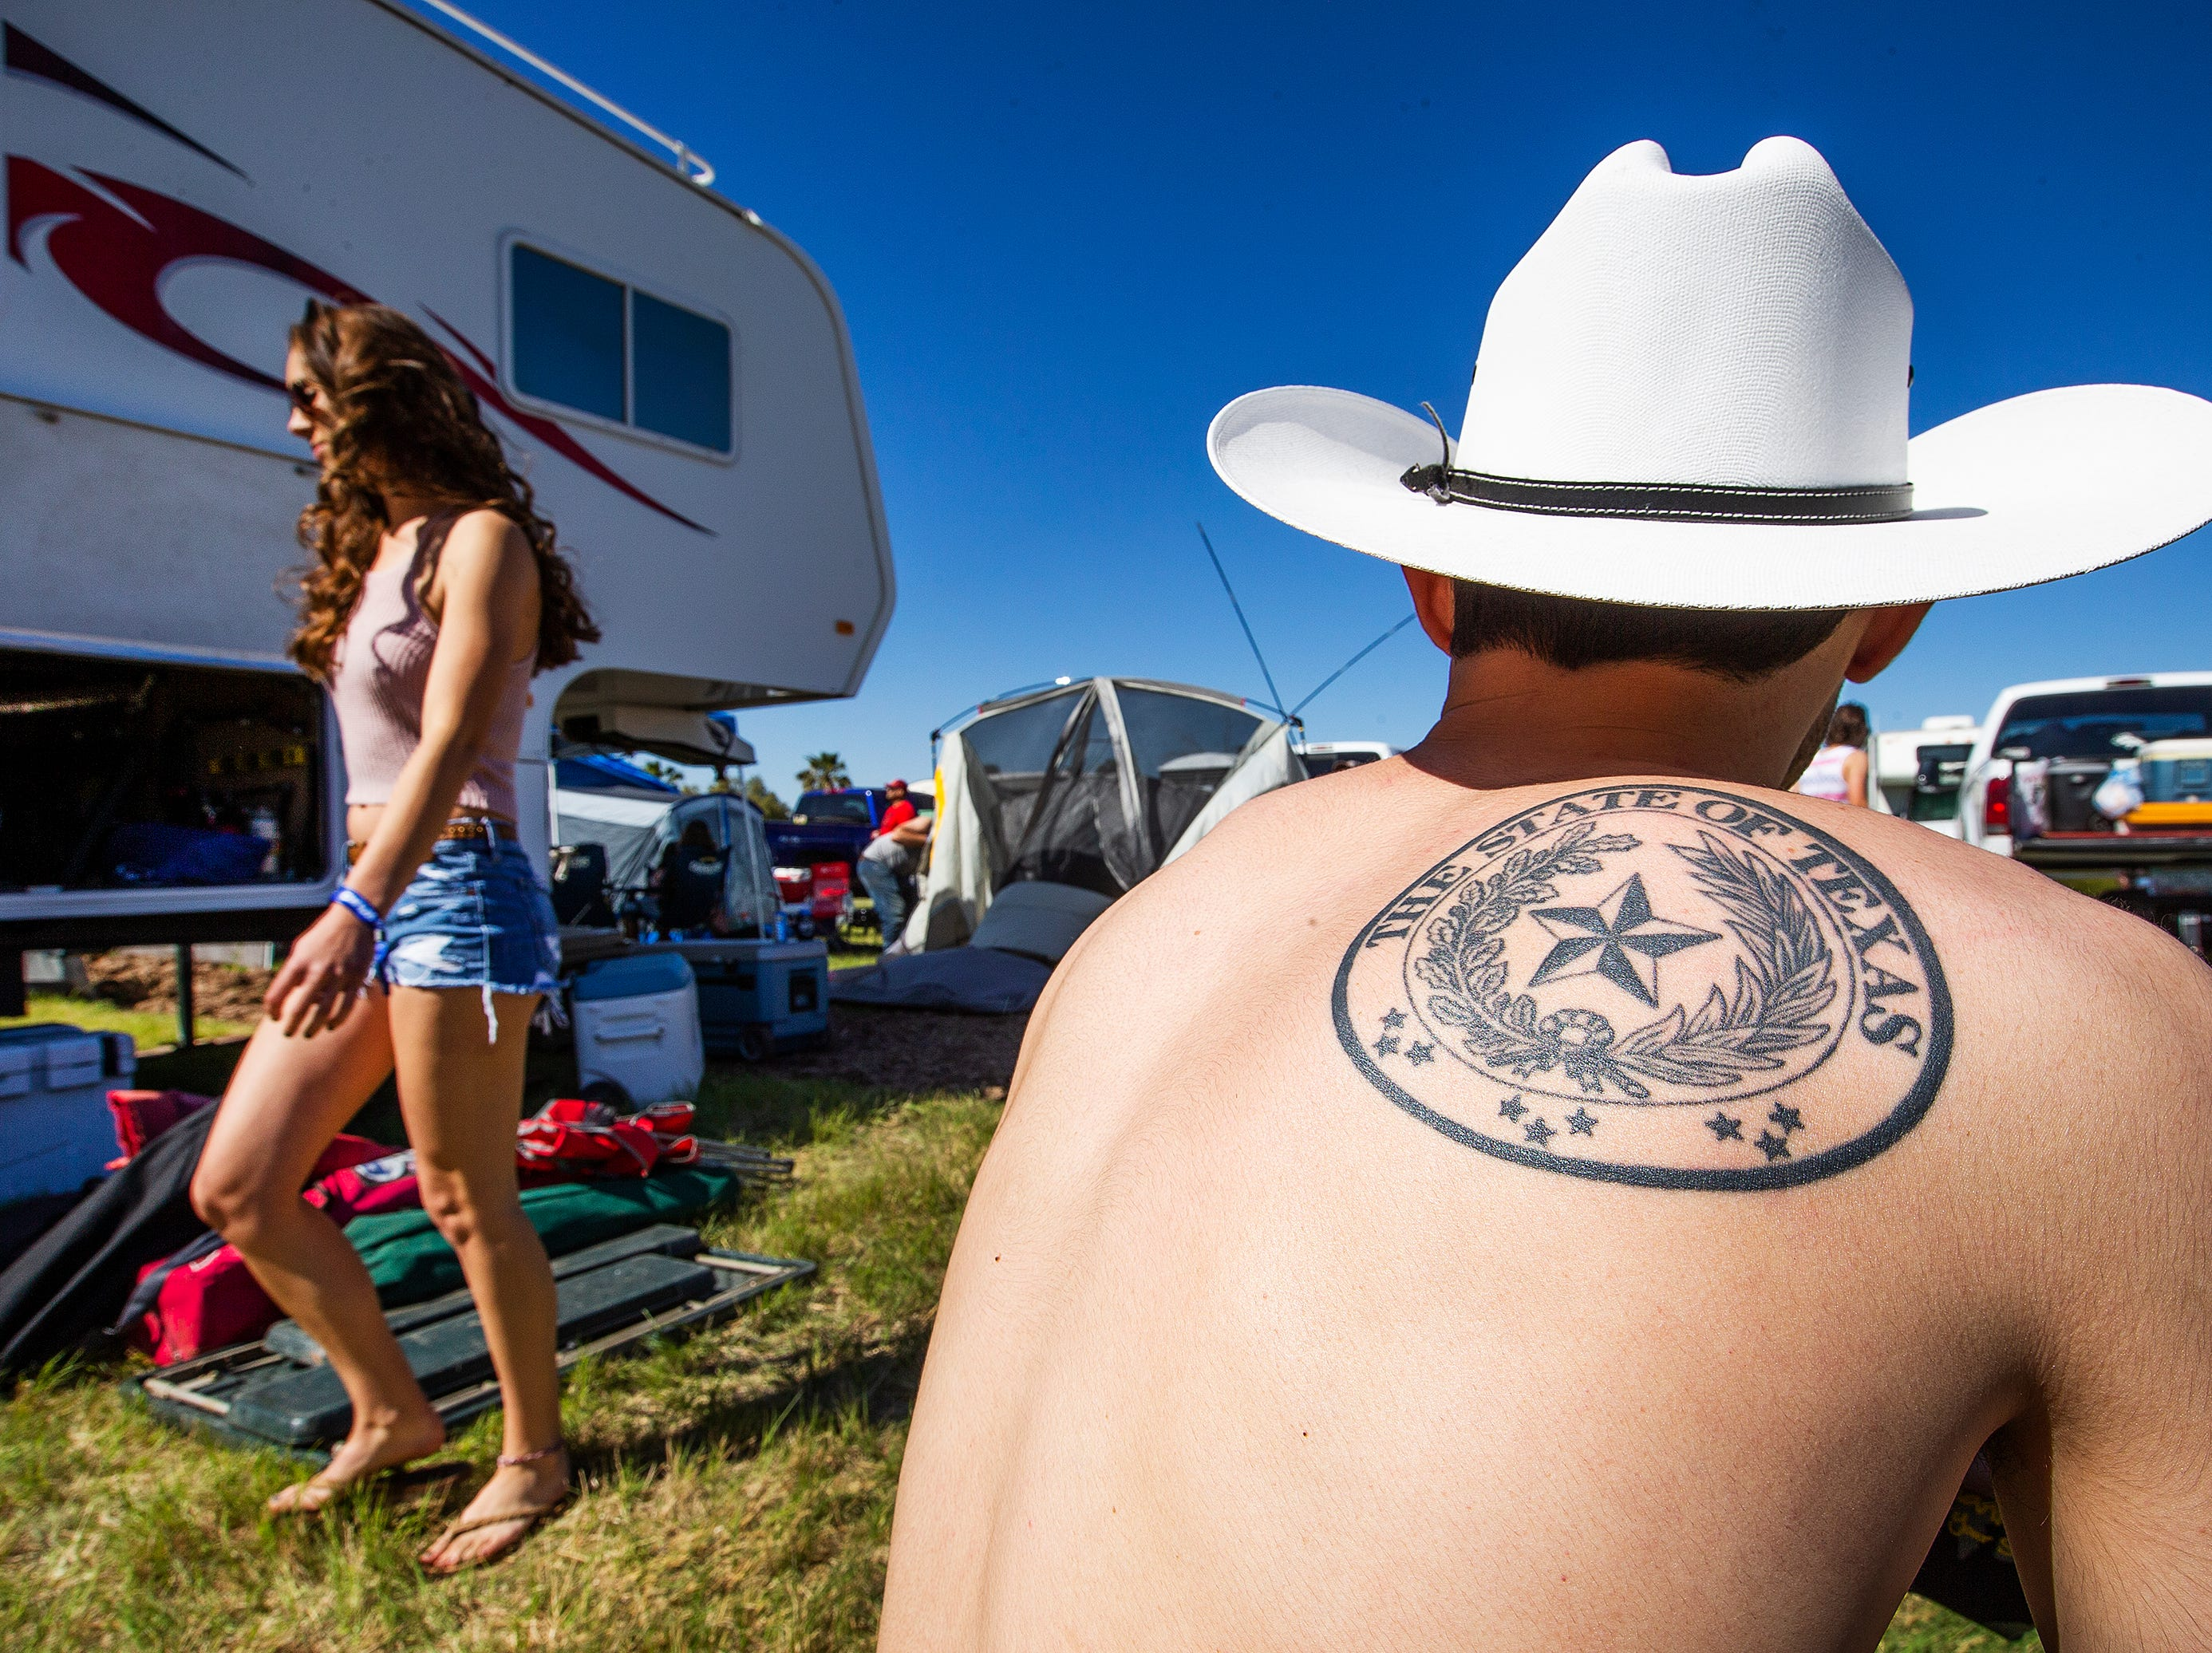 Texas native Cameron Glass, 23, of Chandler, proudly wears his Texas tattoo after waking up in his camp at the Country Thunder Arizona 2019 music festival April 11, 2019.